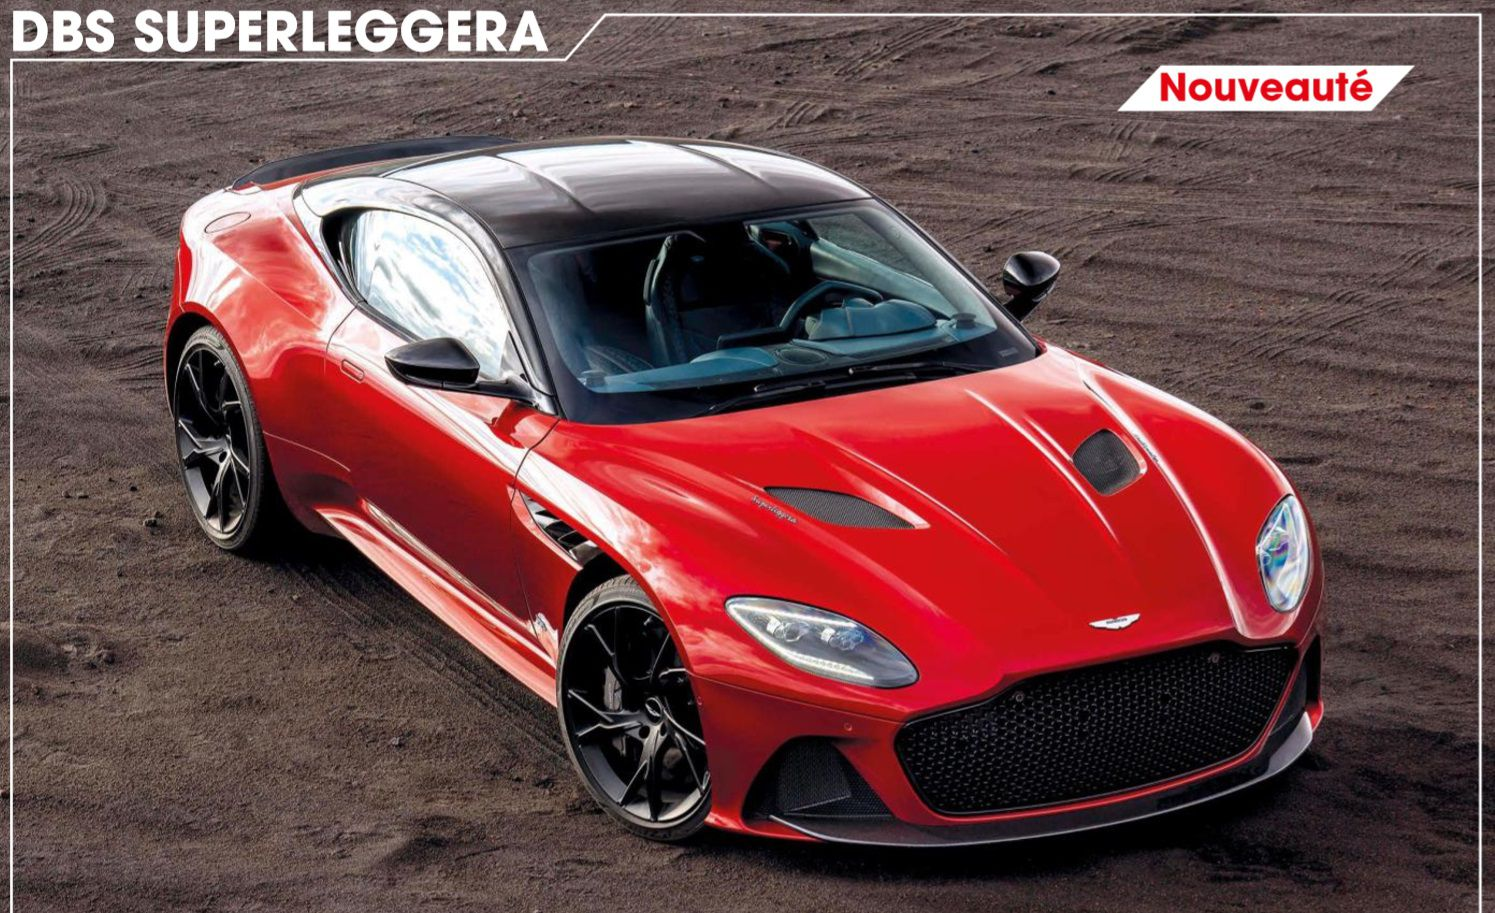 2019 red Aston Martin DBS superleggera